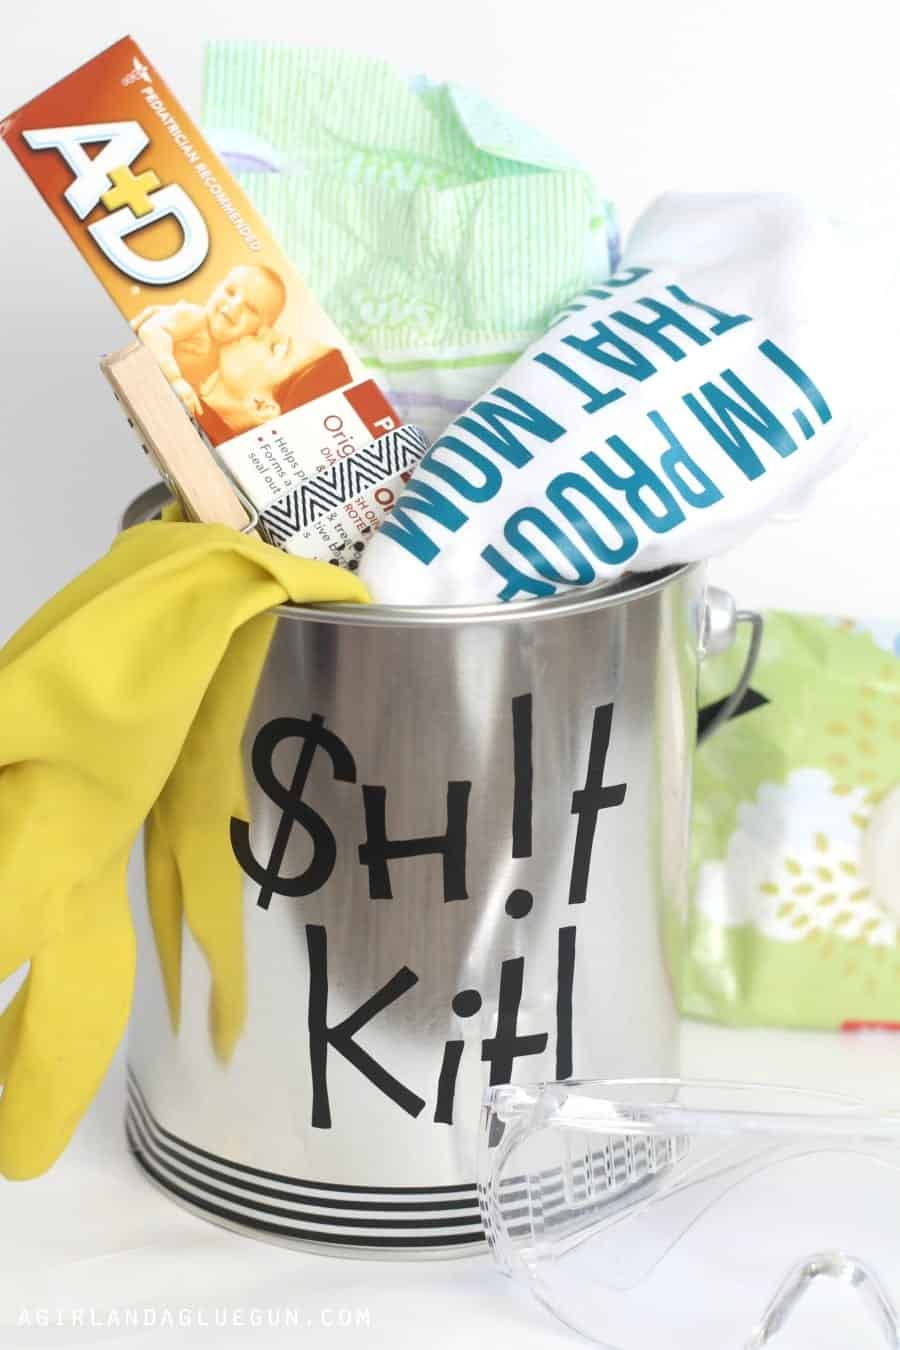 Baby Shower Gifts amp Baby Gift Ideas  Anthropologie